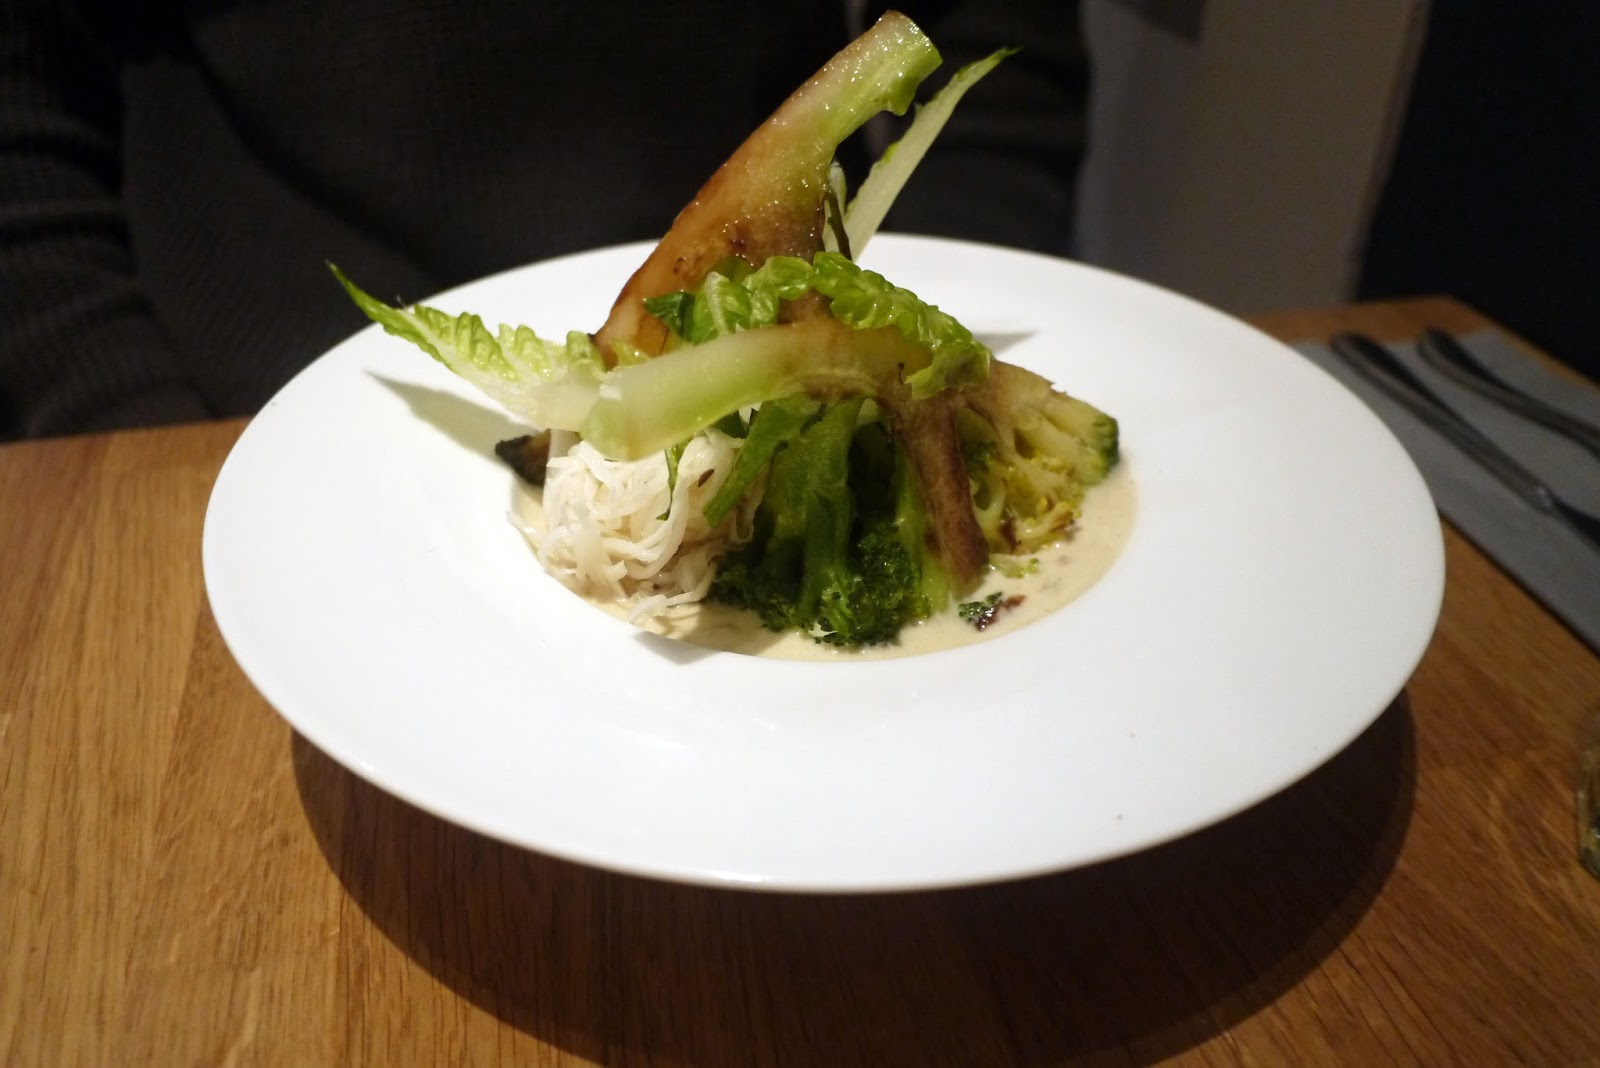 Mr Hef Had Calabrese Broccoli U0026 Confit Jersey Royals With Spelt Grain  Warmed In A Smoked Almond And Olive Oil Emulsion, Lovage And Pickled  Cabbage, ...